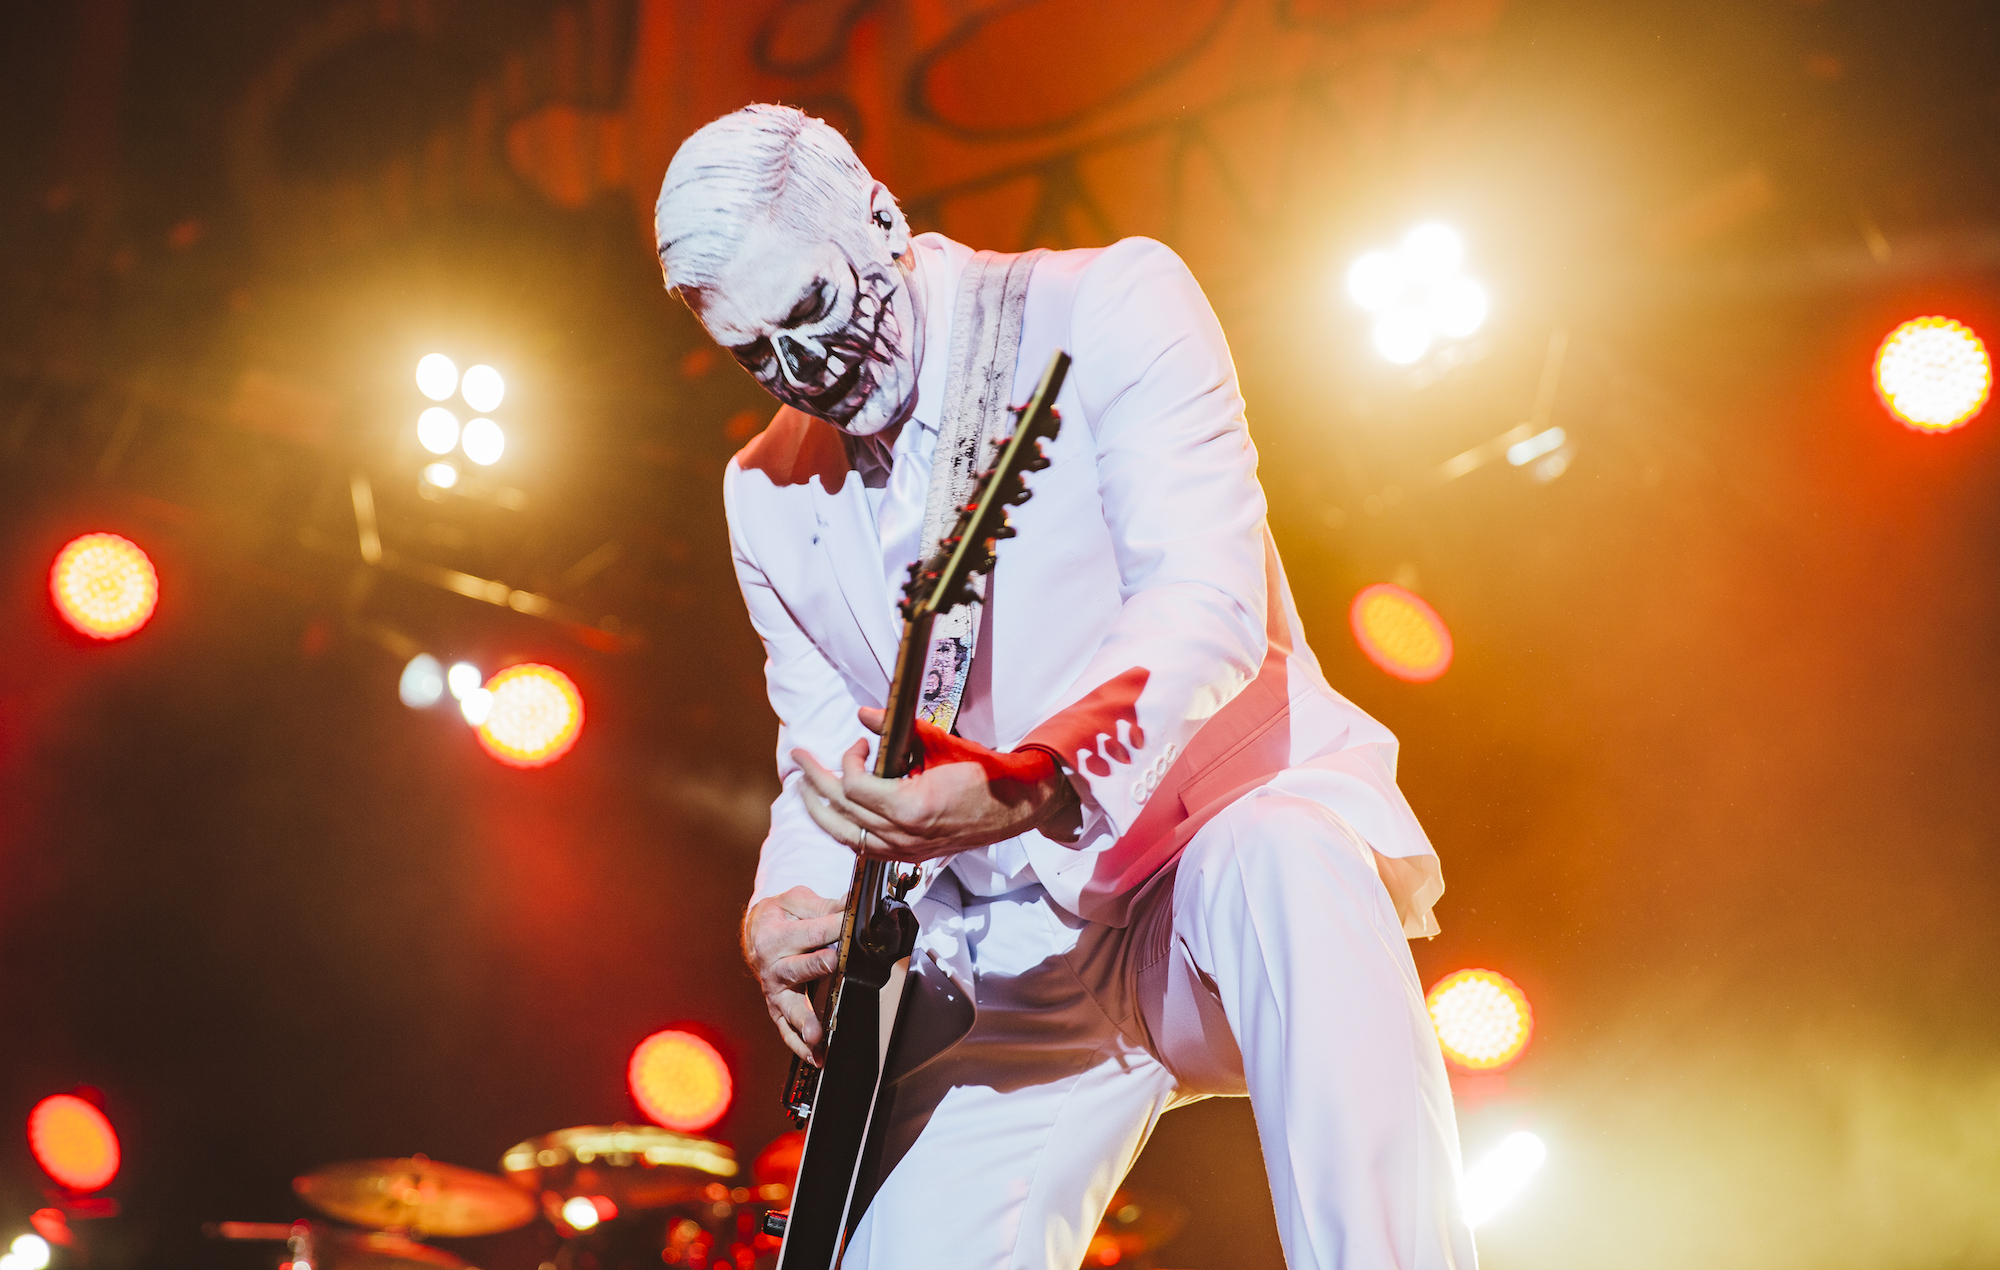 Wes Borland Shares Clips Of New Limp Bizkit Songs From Studio